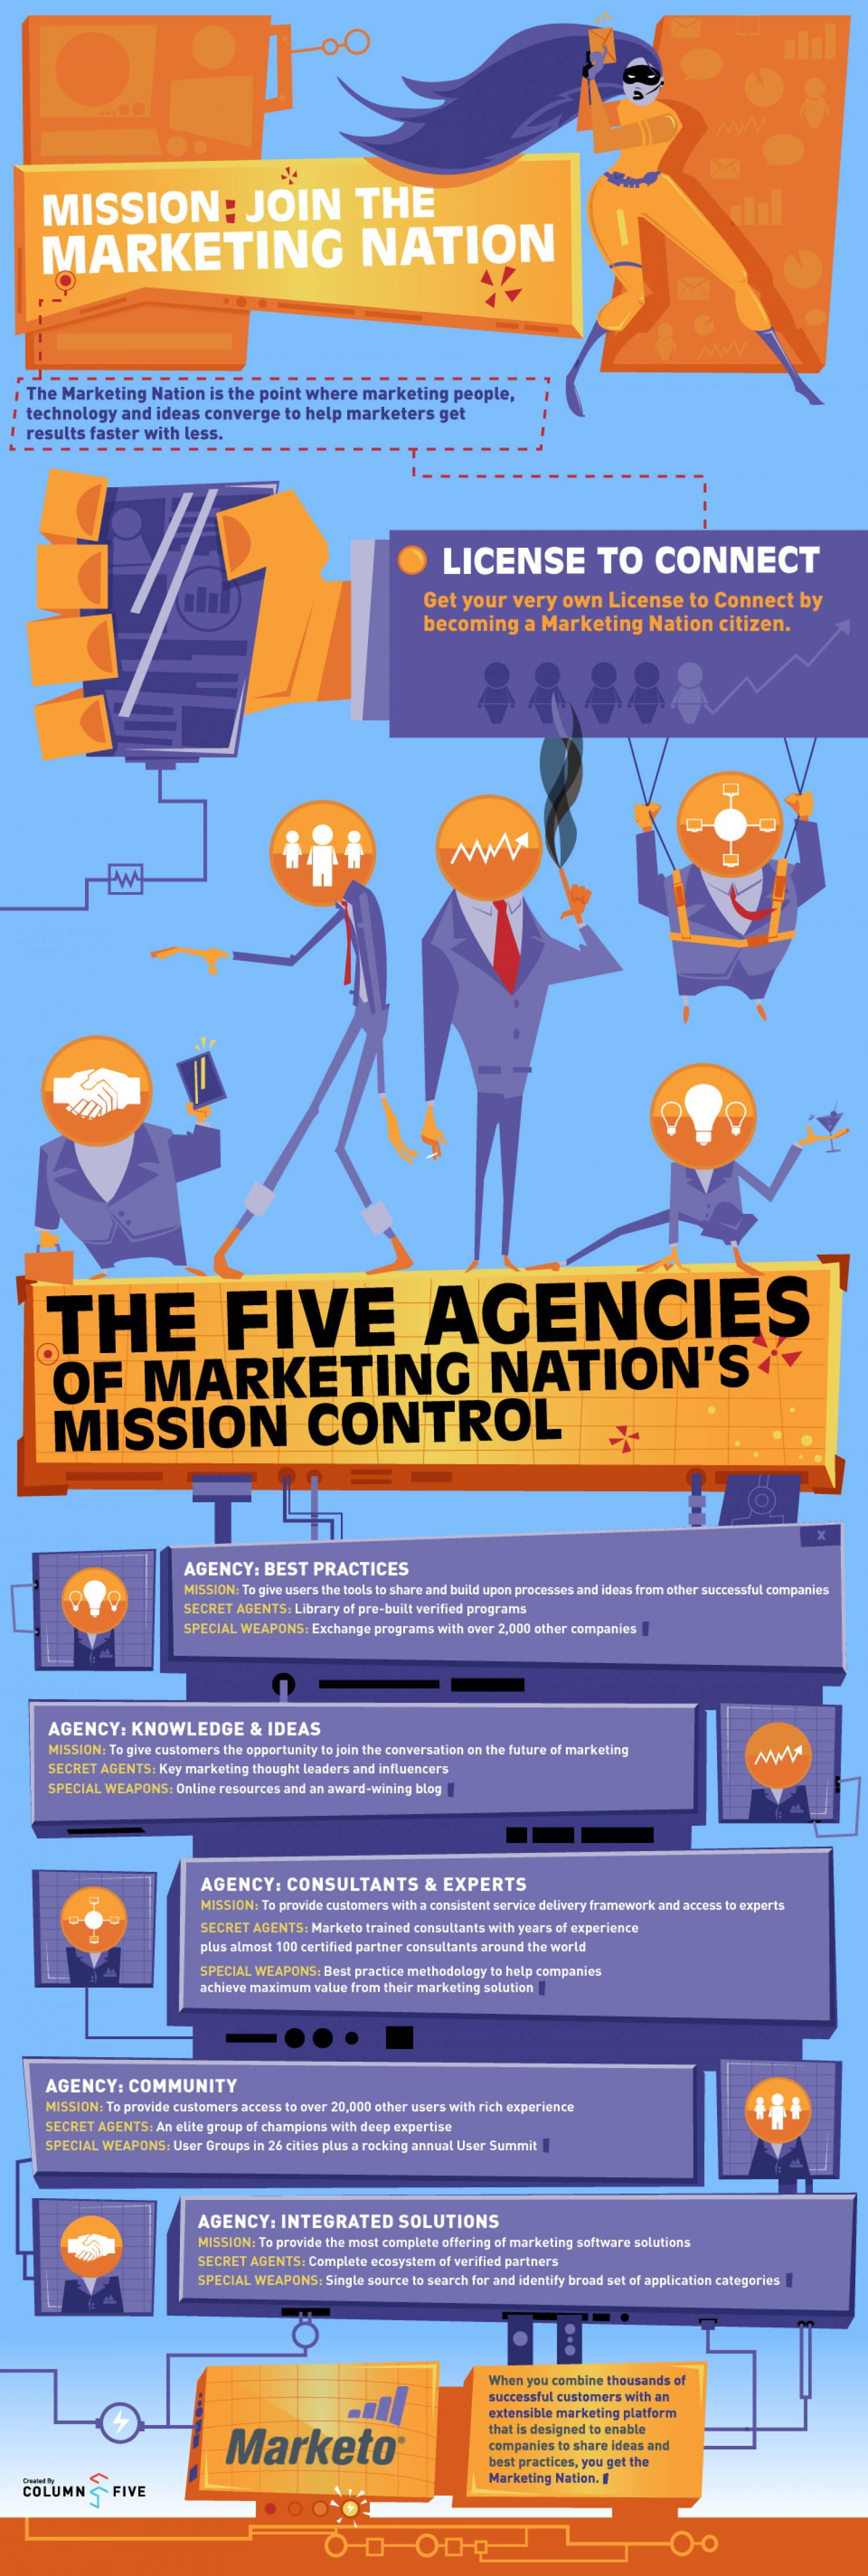 Mission: Join the Marketing Nation